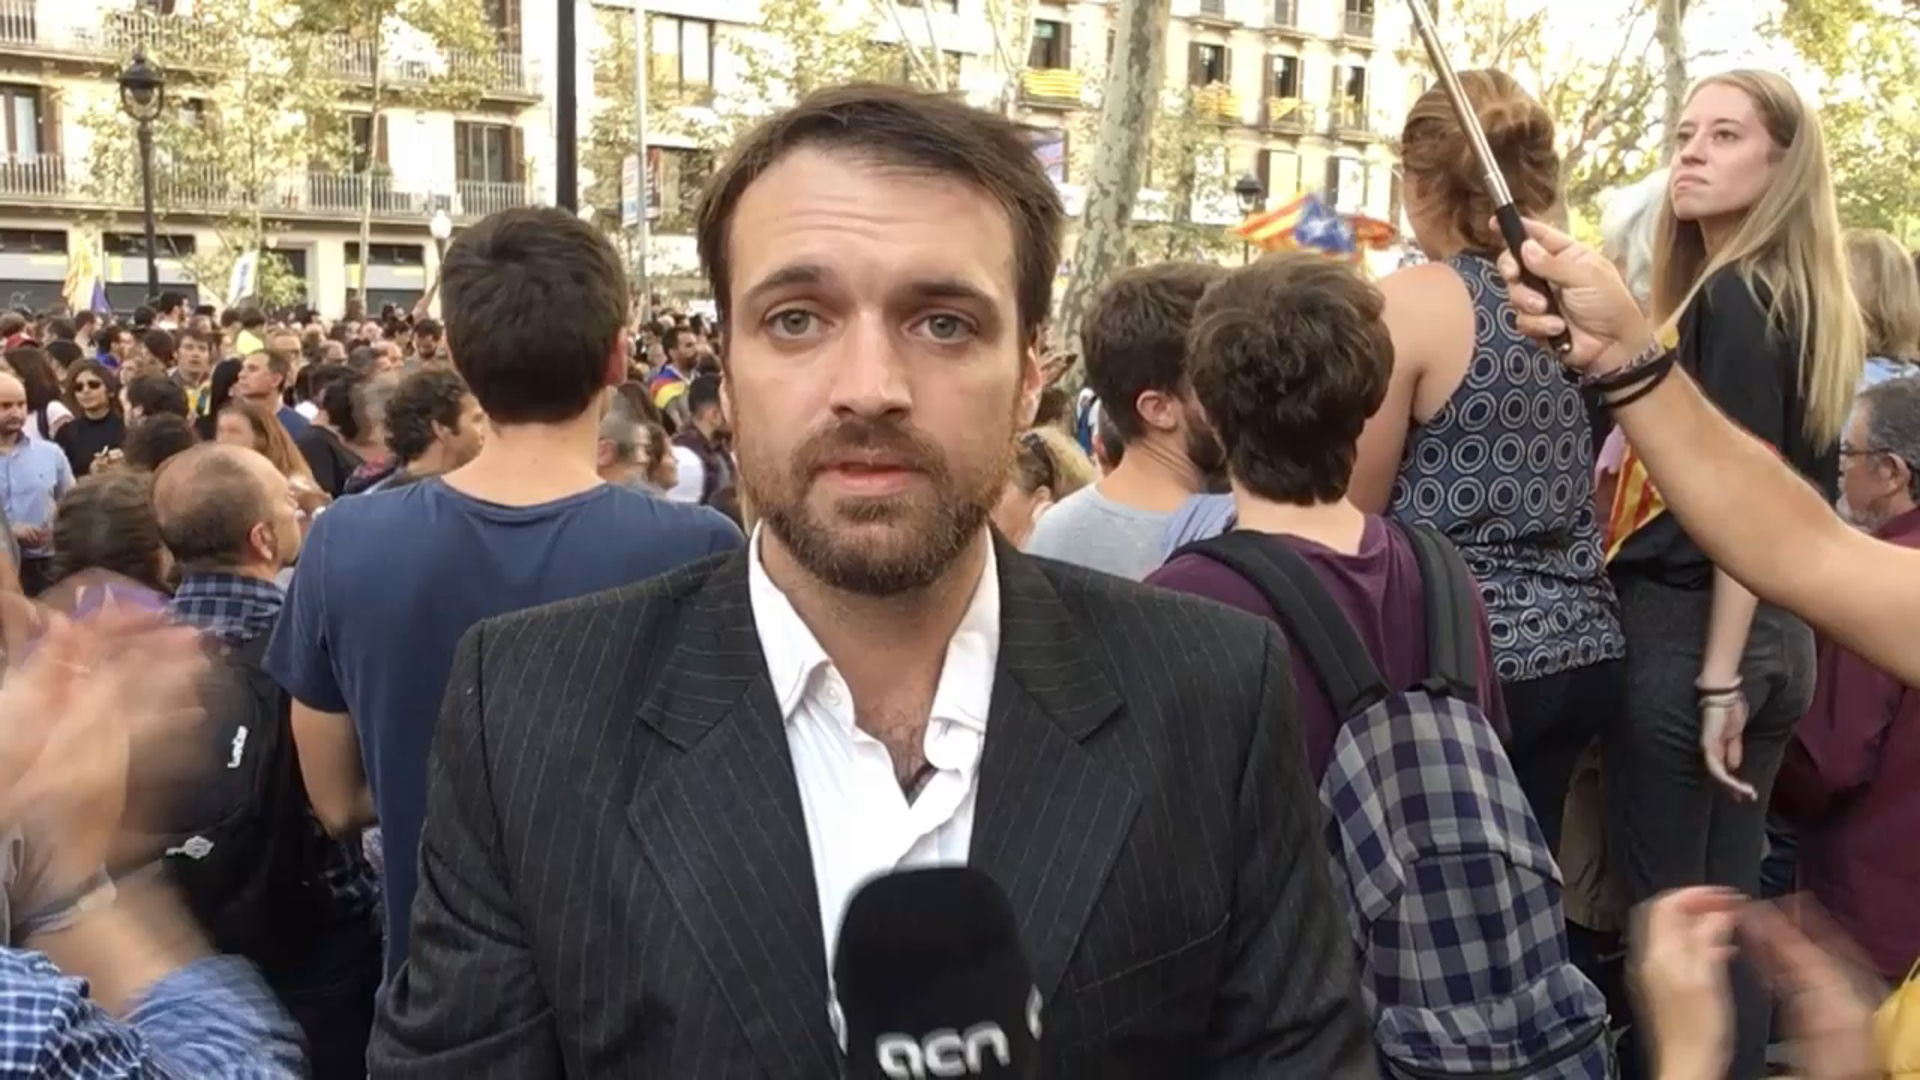 3-Oct-17 TV News: 'Catalonia is on strike'